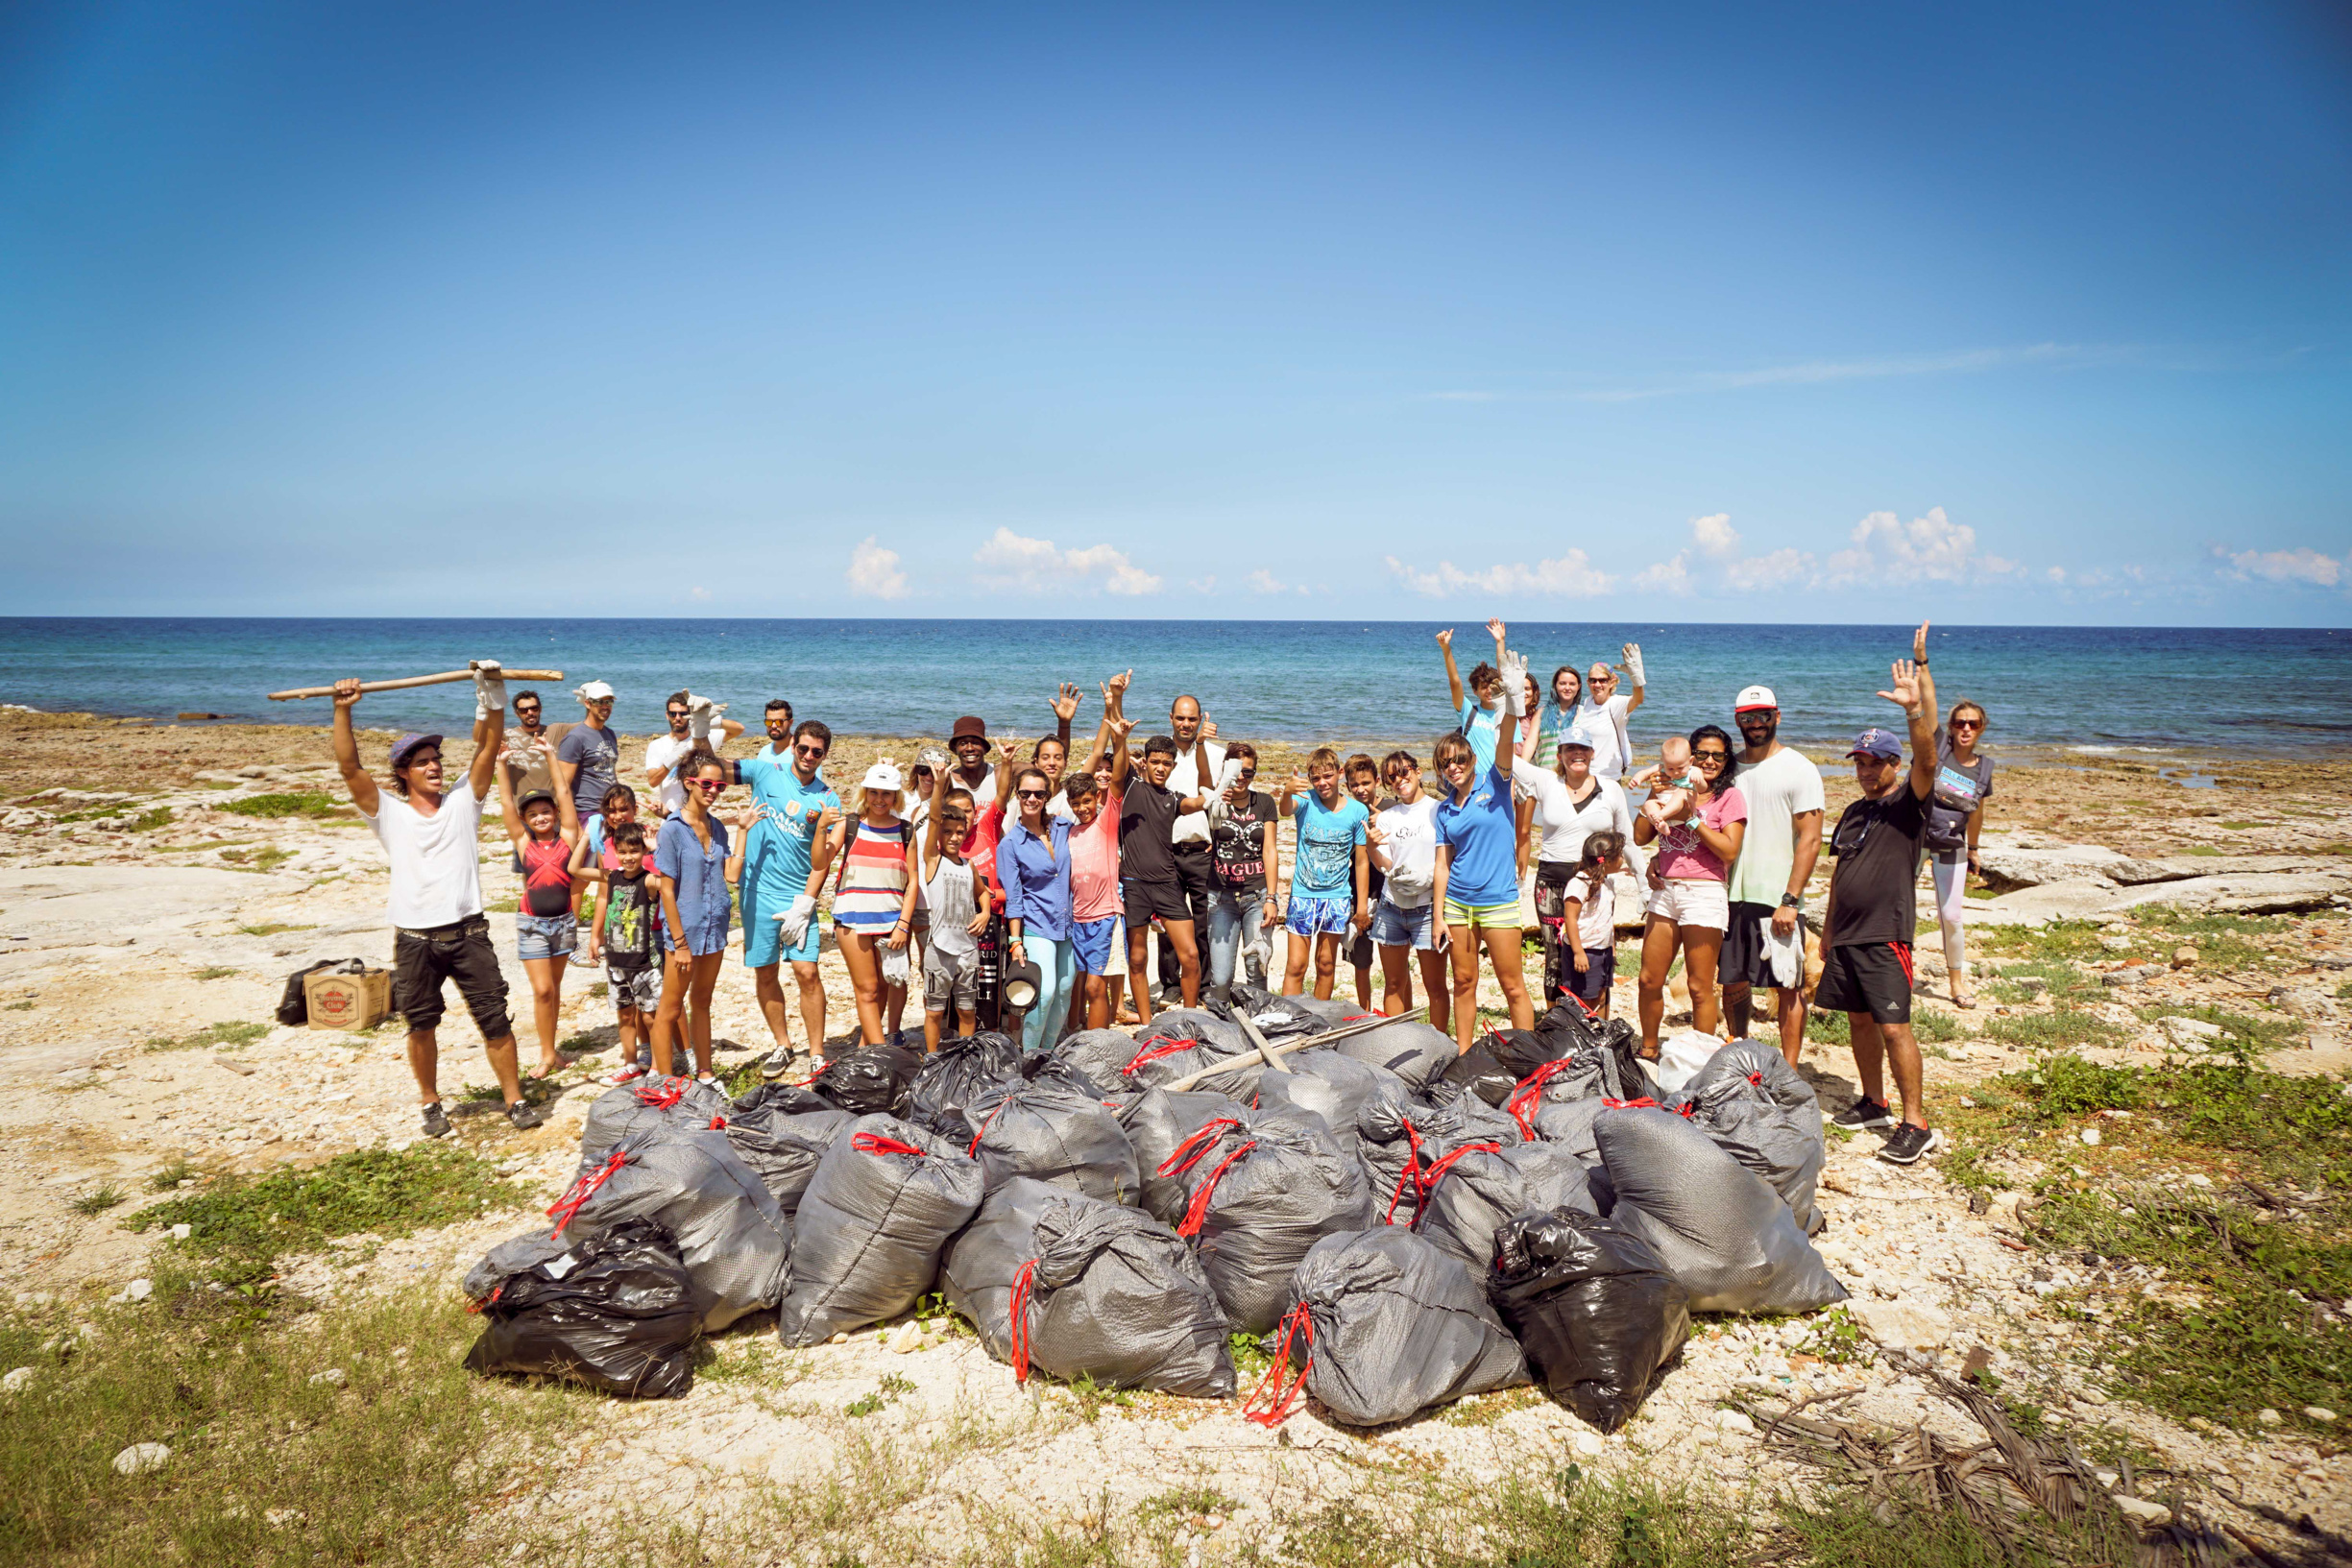 """As part of the International Coastal Cleanup Day, we collected over 50 bags of trash from the beach at """"La 70"""" - a popular surf break near the National Aquarium of Cuba."""